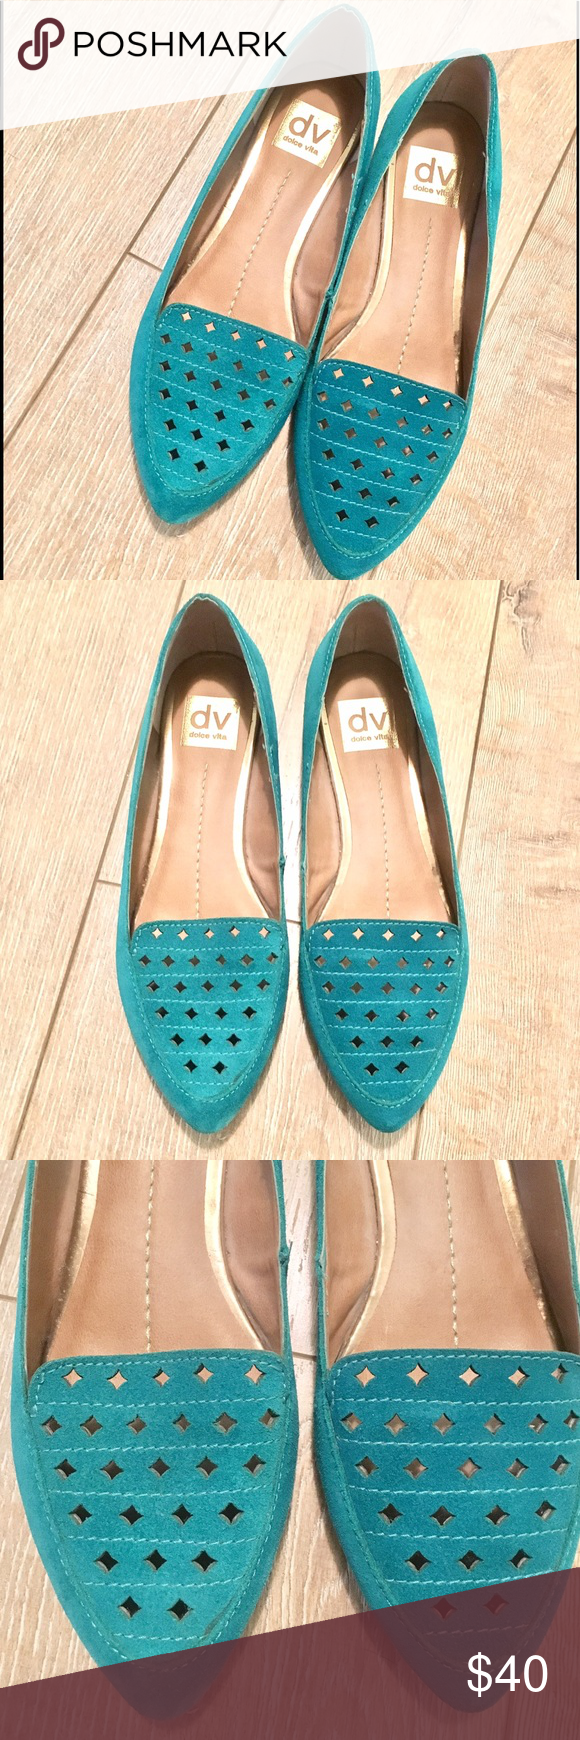 Dolce vita Flats Teal Dolce Vita Flats lightly worn. Dolce Vita Shoes Flats & Loafers